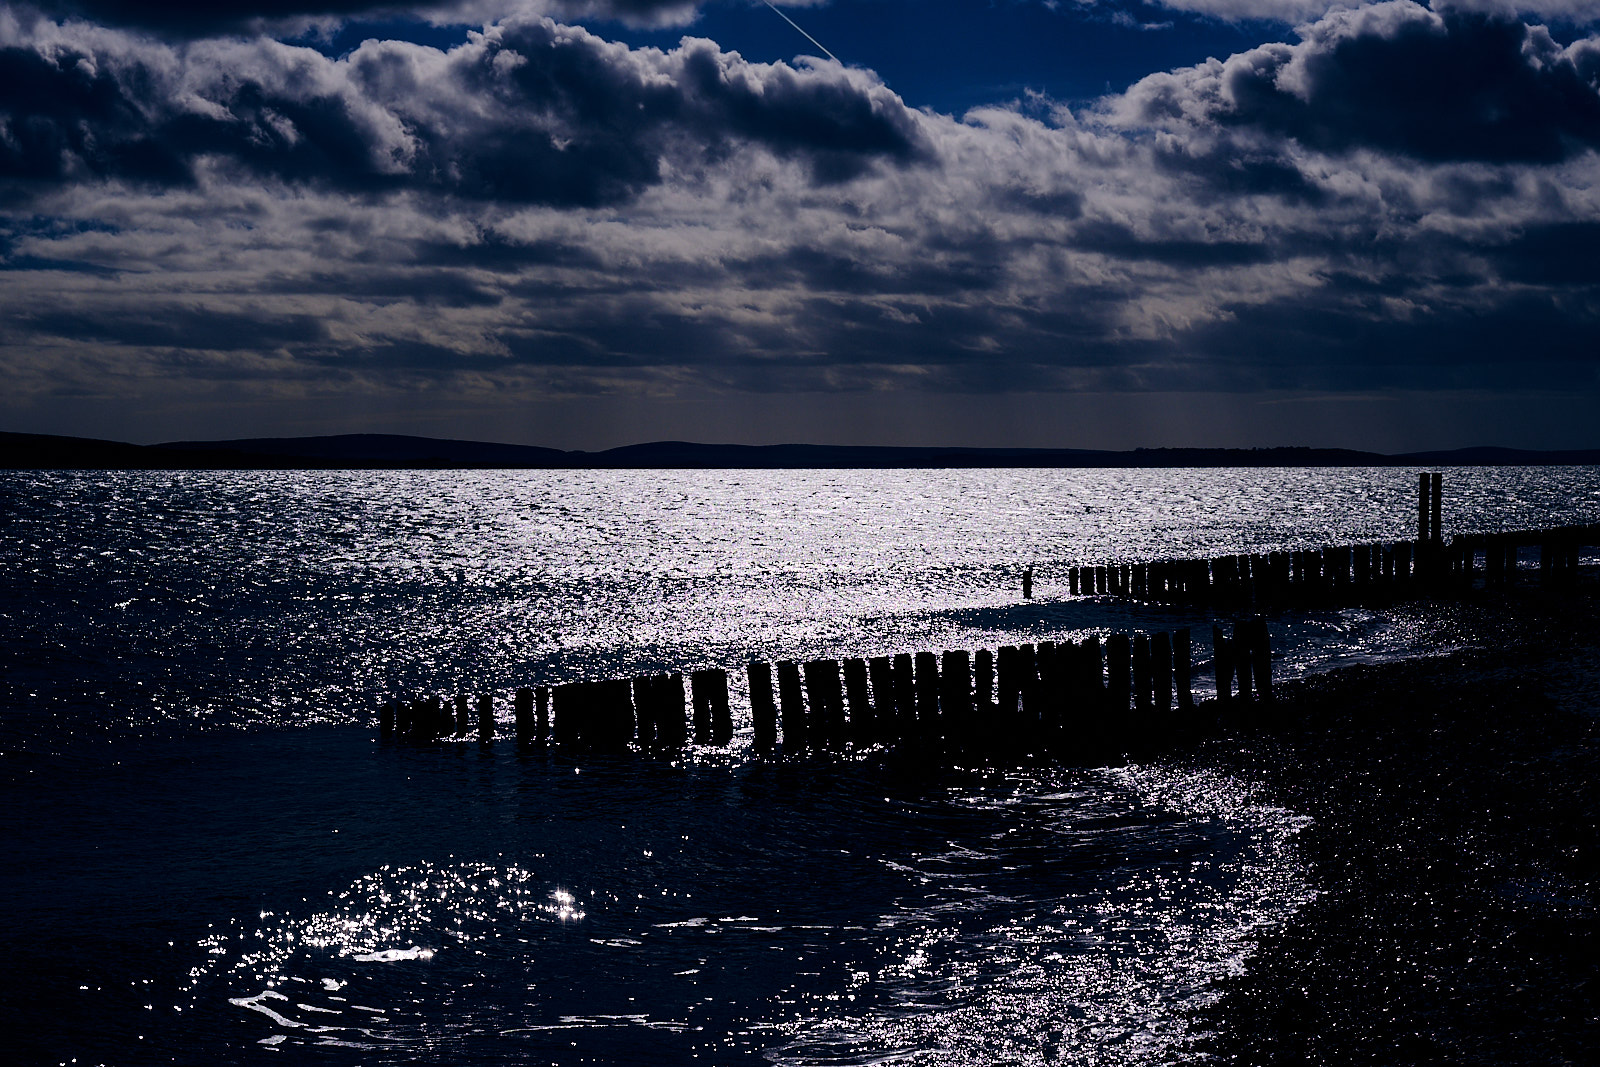 The Isle oof Wight from Lepe Beach.